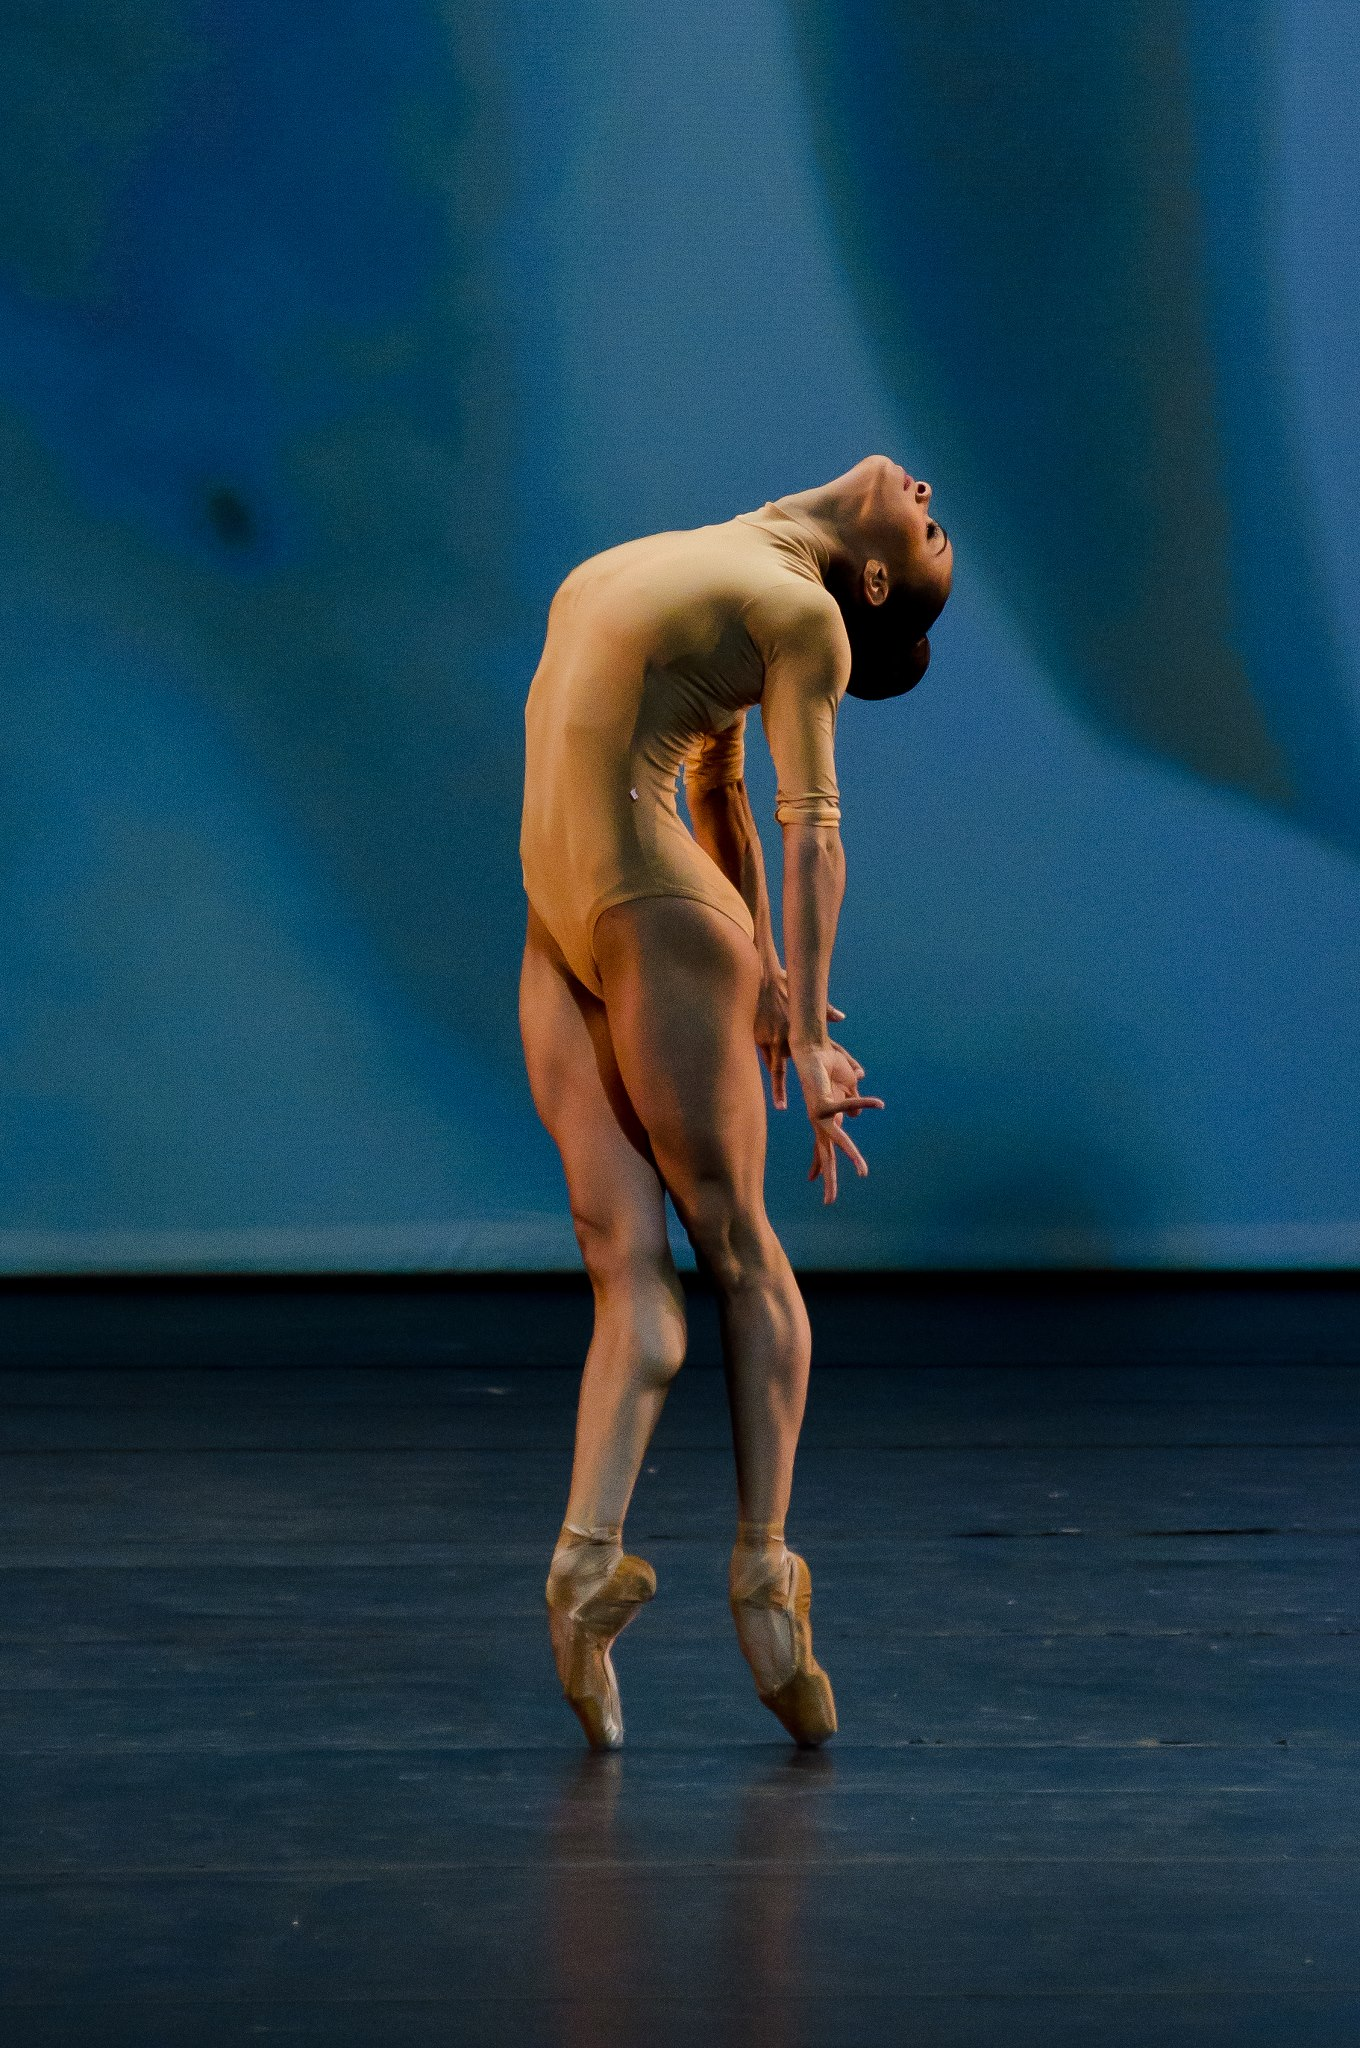 Misty Copeland, one of the most popular names in ballet today, emerged from the American Ballet Theatre.